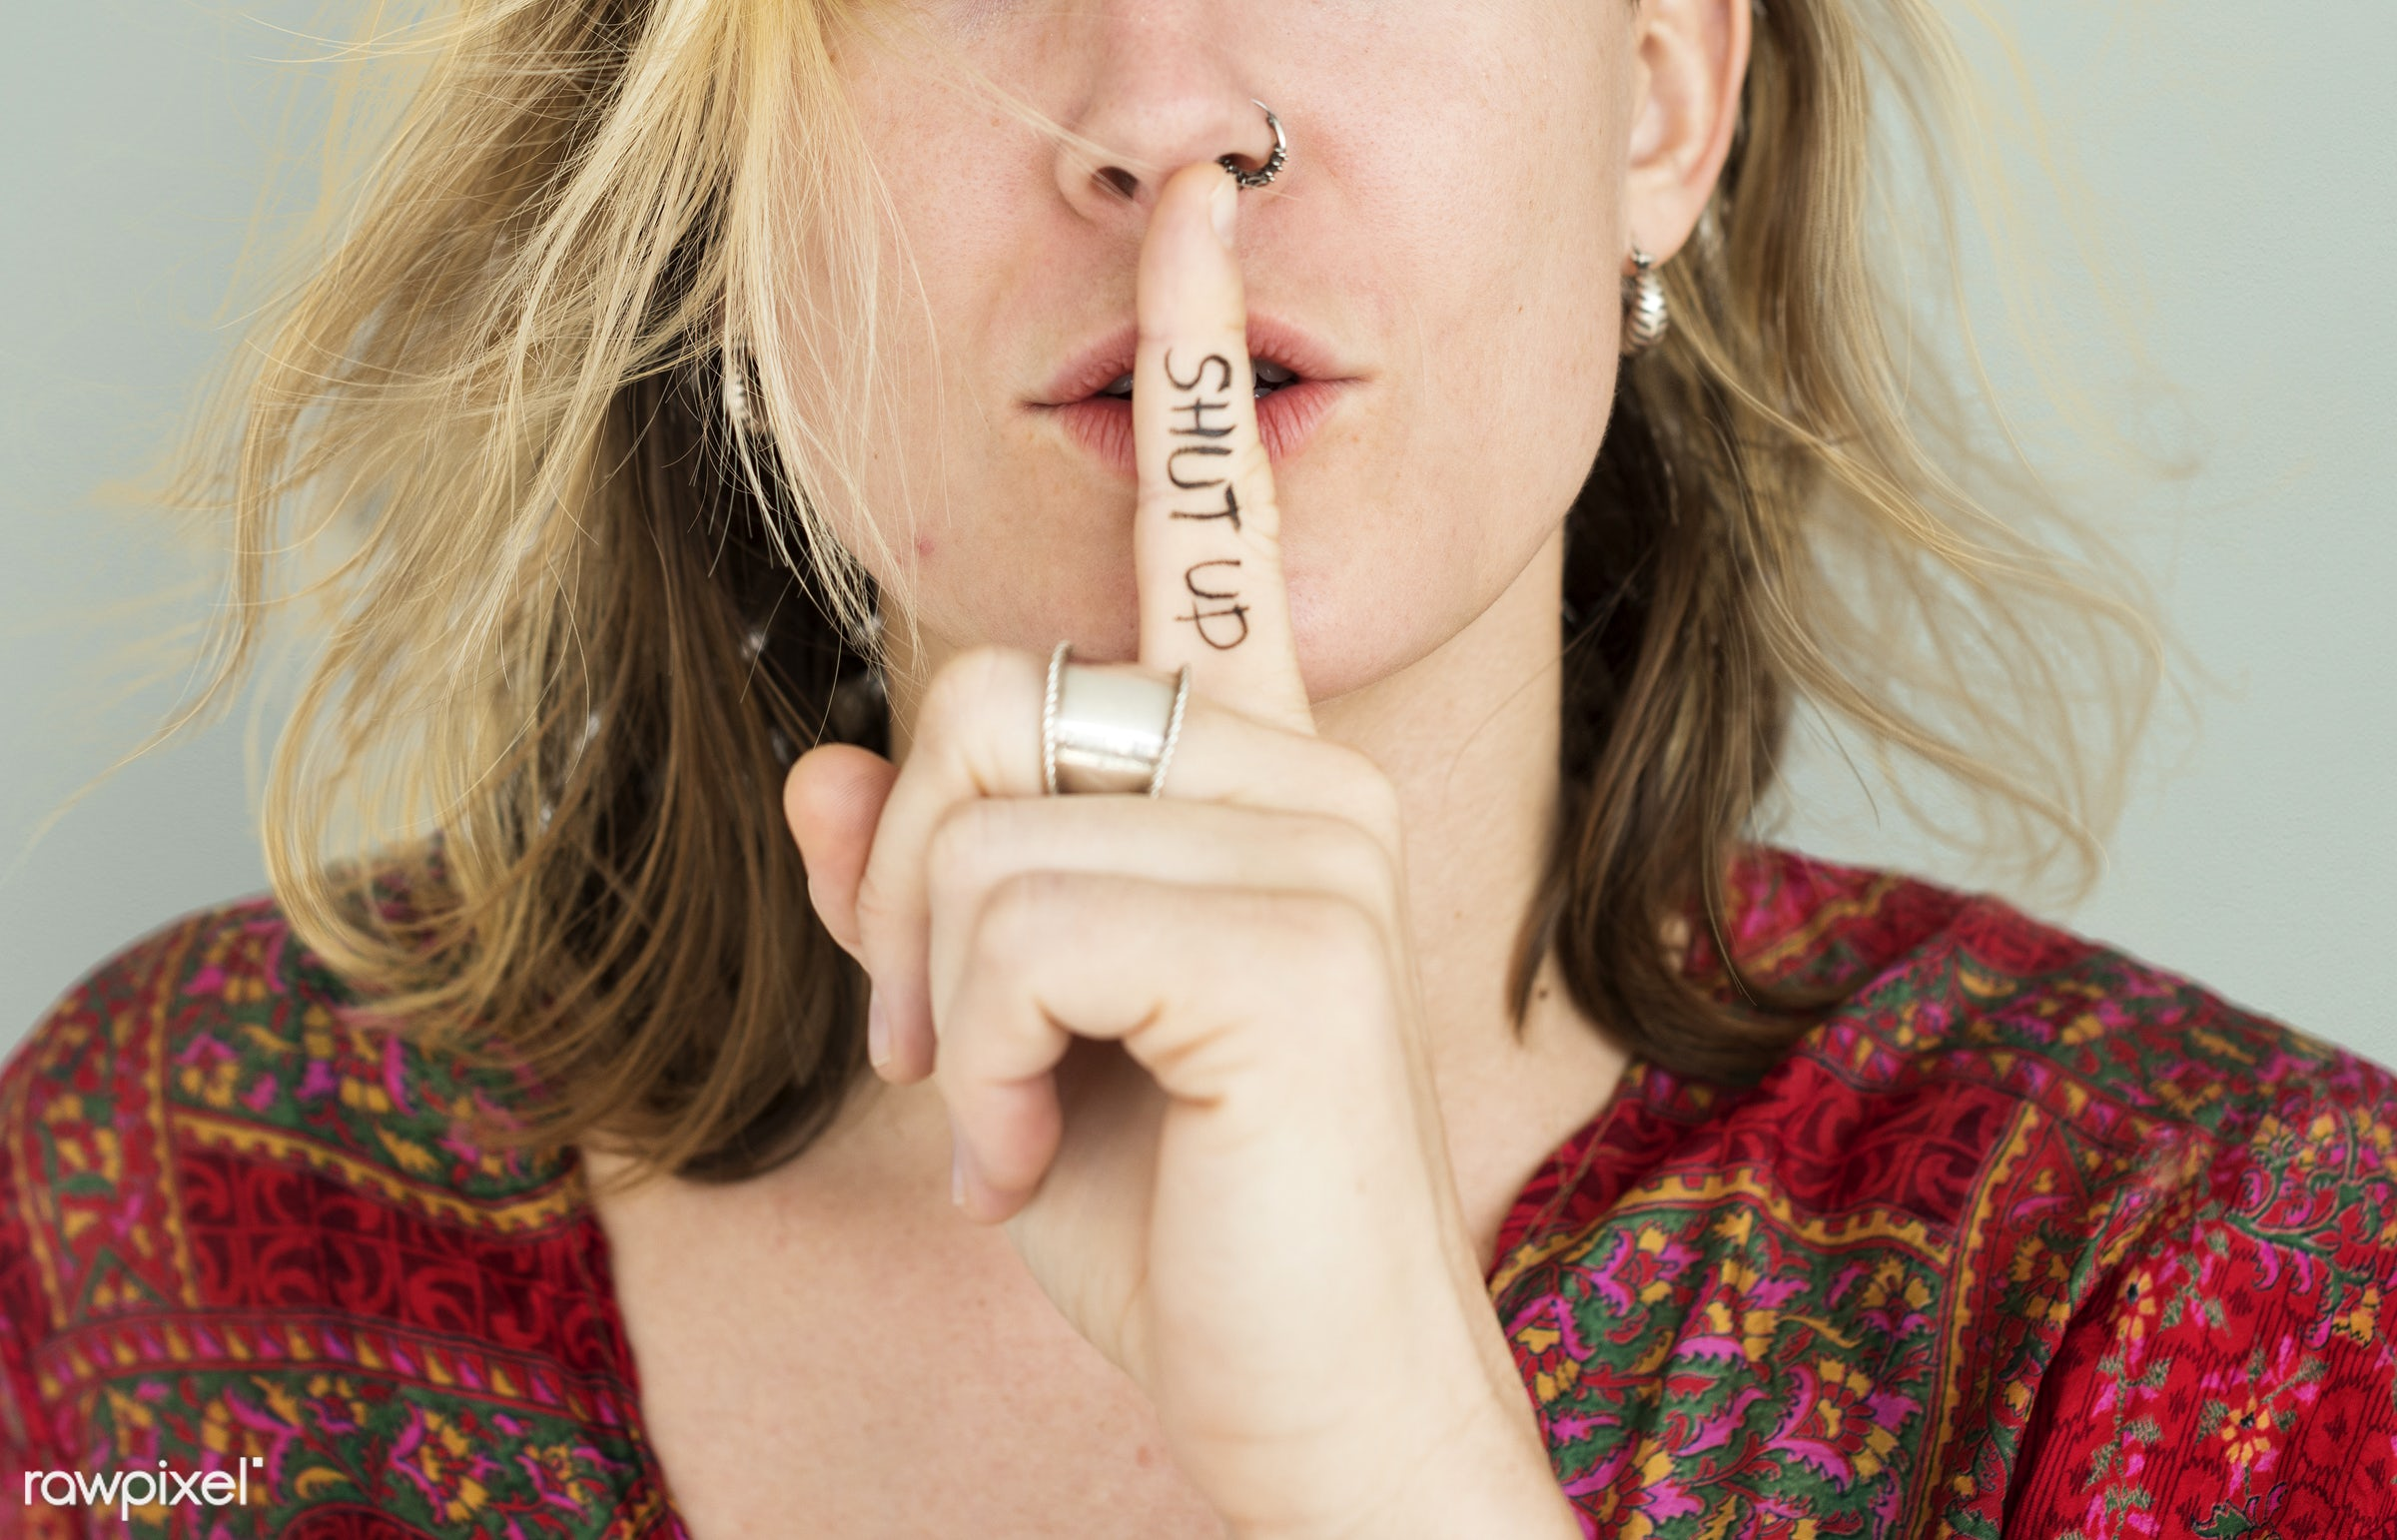 studio, expression, face, person, beauty, shut up, cute, pretty, people, finger on lips, girl, woman, casual, grey, shh,...